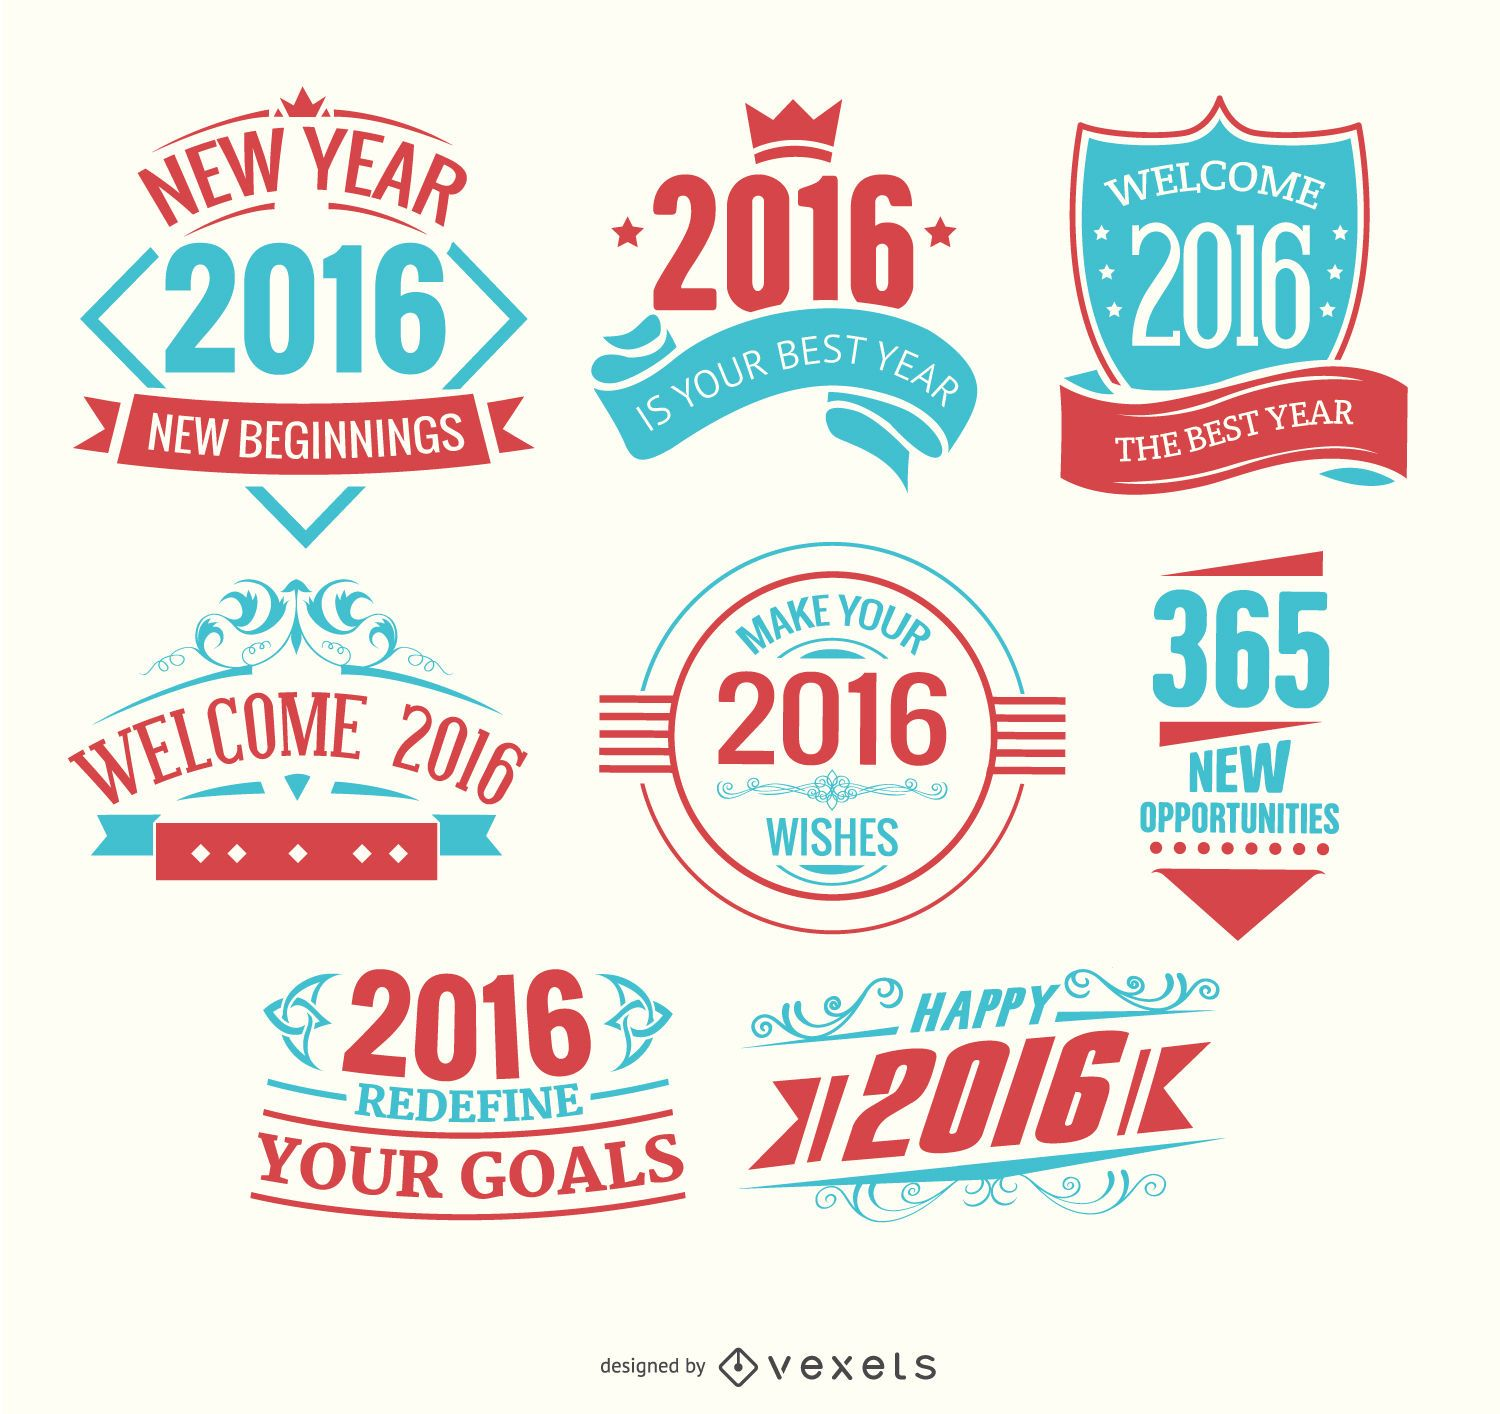 2016 new year logos light blue and red